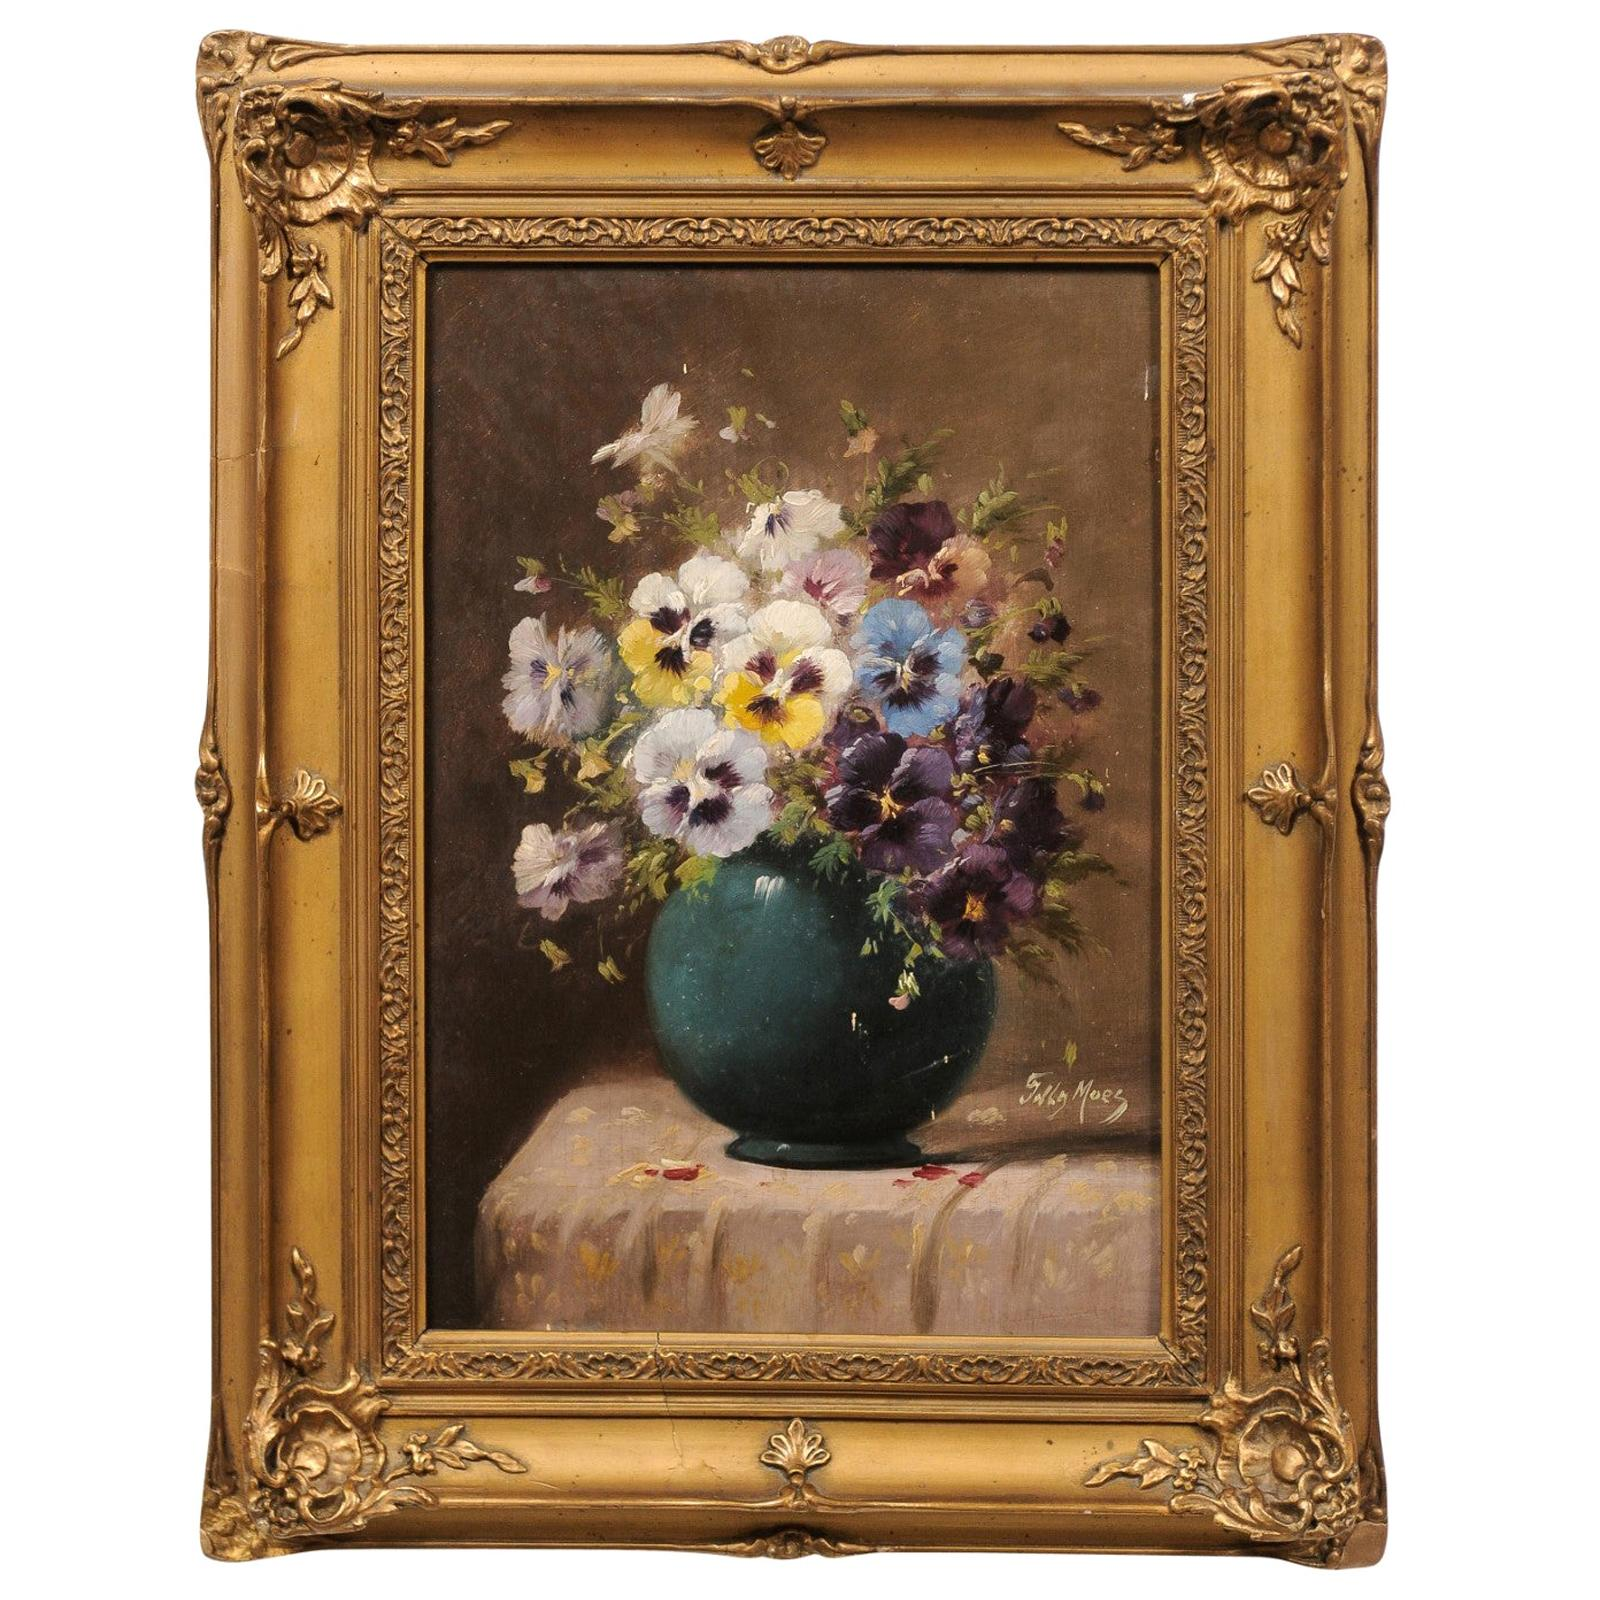 French 19th Century Still-Life Oil Painting Depicting Pansies in Giltwood Frame